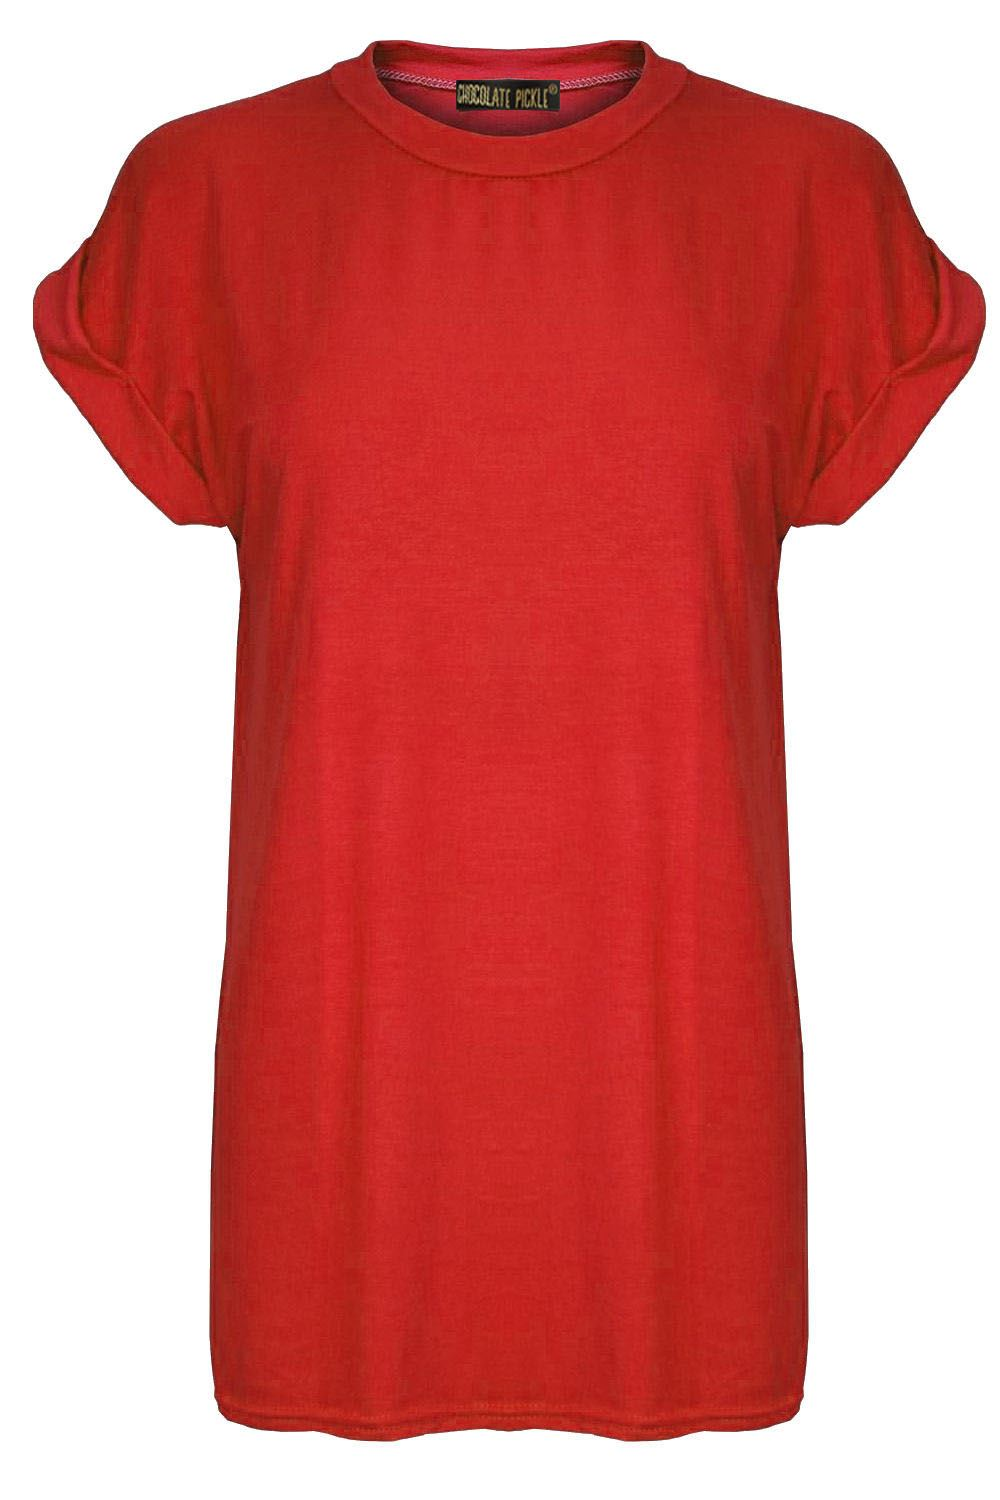 New-Ladies-Stretchy-Baggy-Oversized-Turn-Up-Short-Sleeve-T-Shirt-Tops-8-22